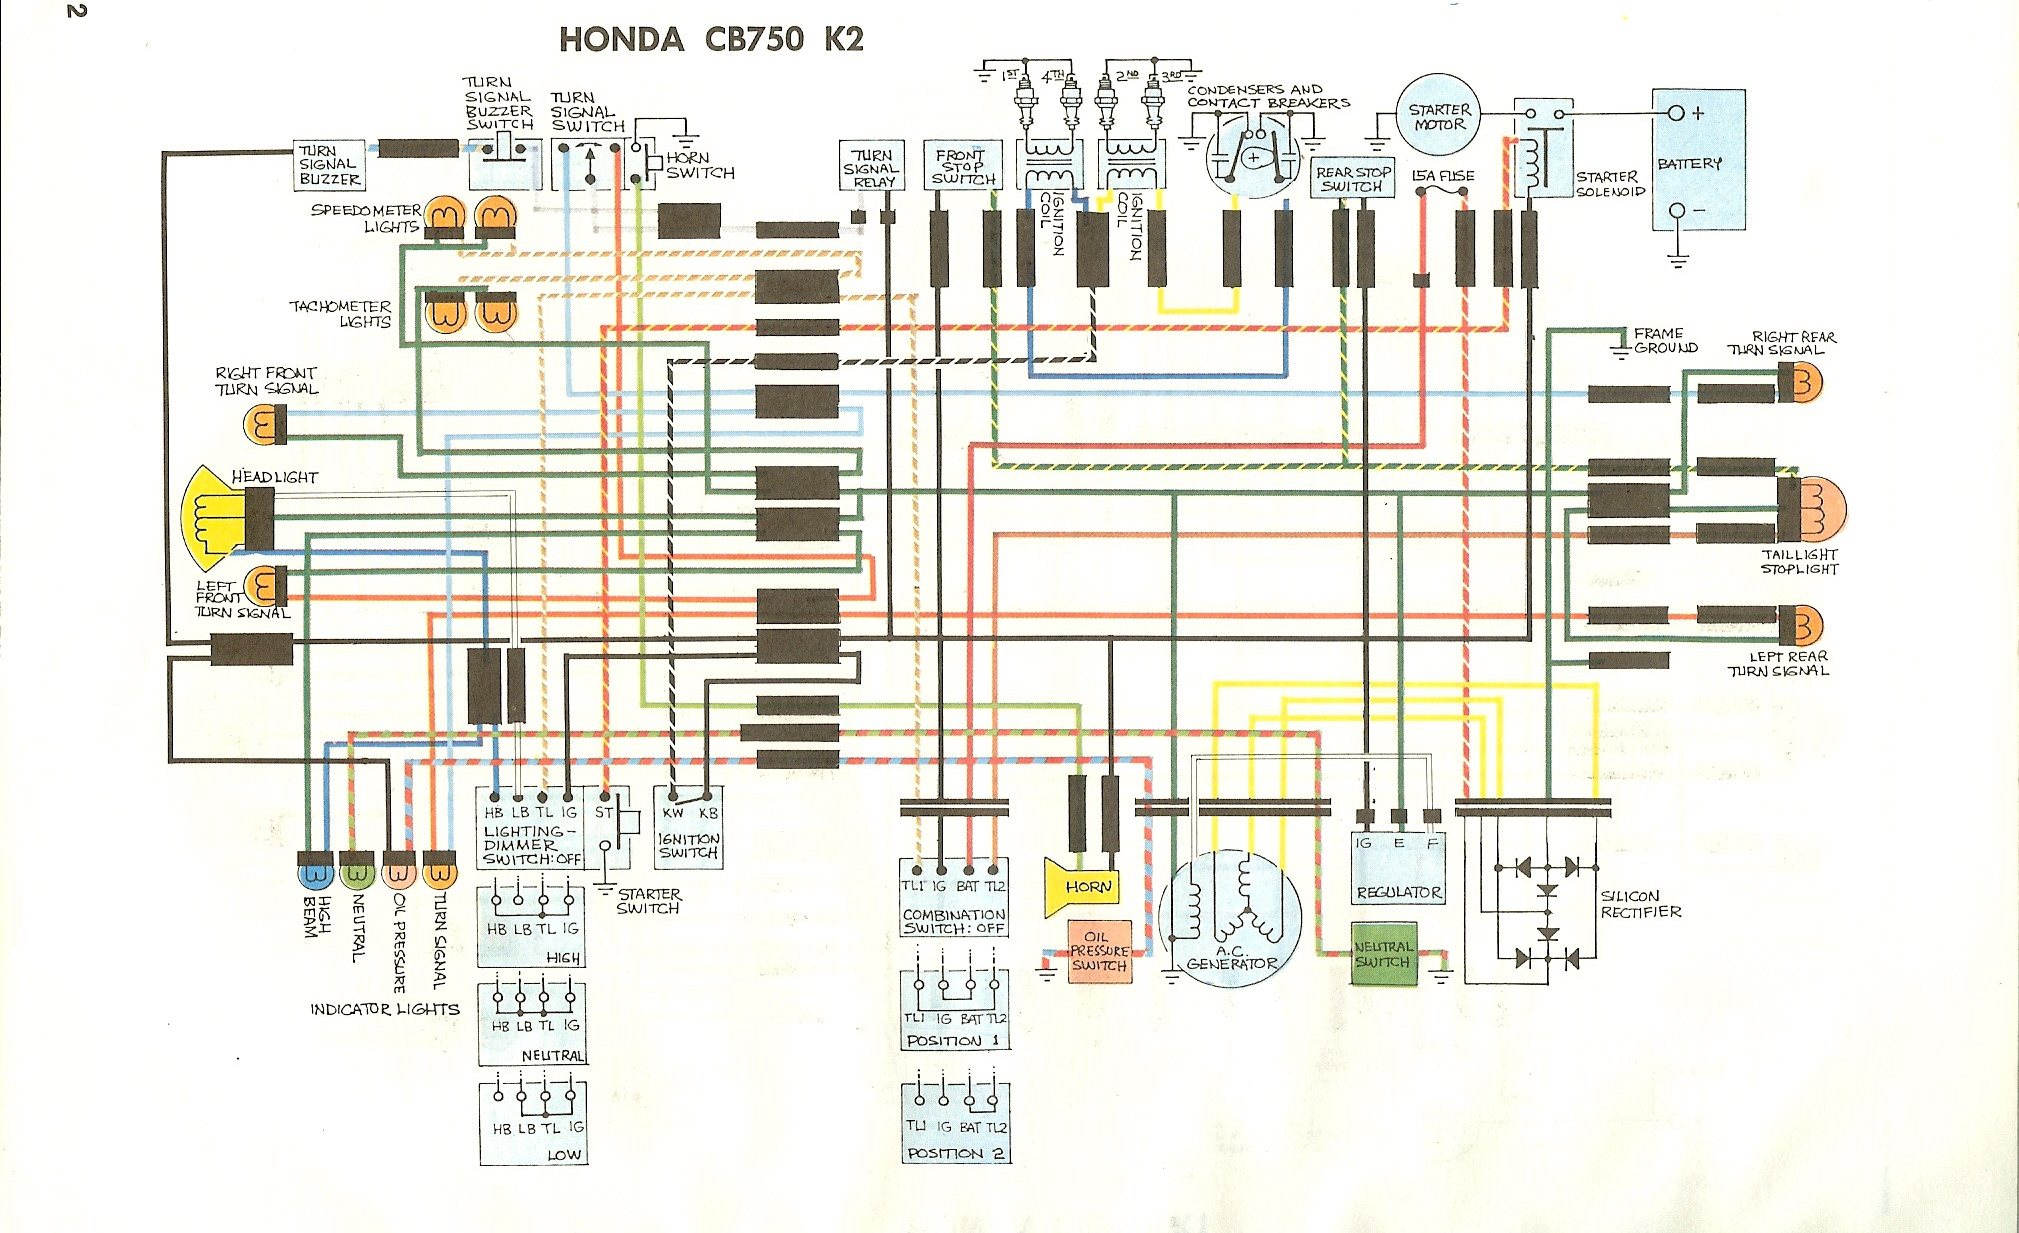 Honda Cb750 Wiring Diagram from manuals.sohc4.net